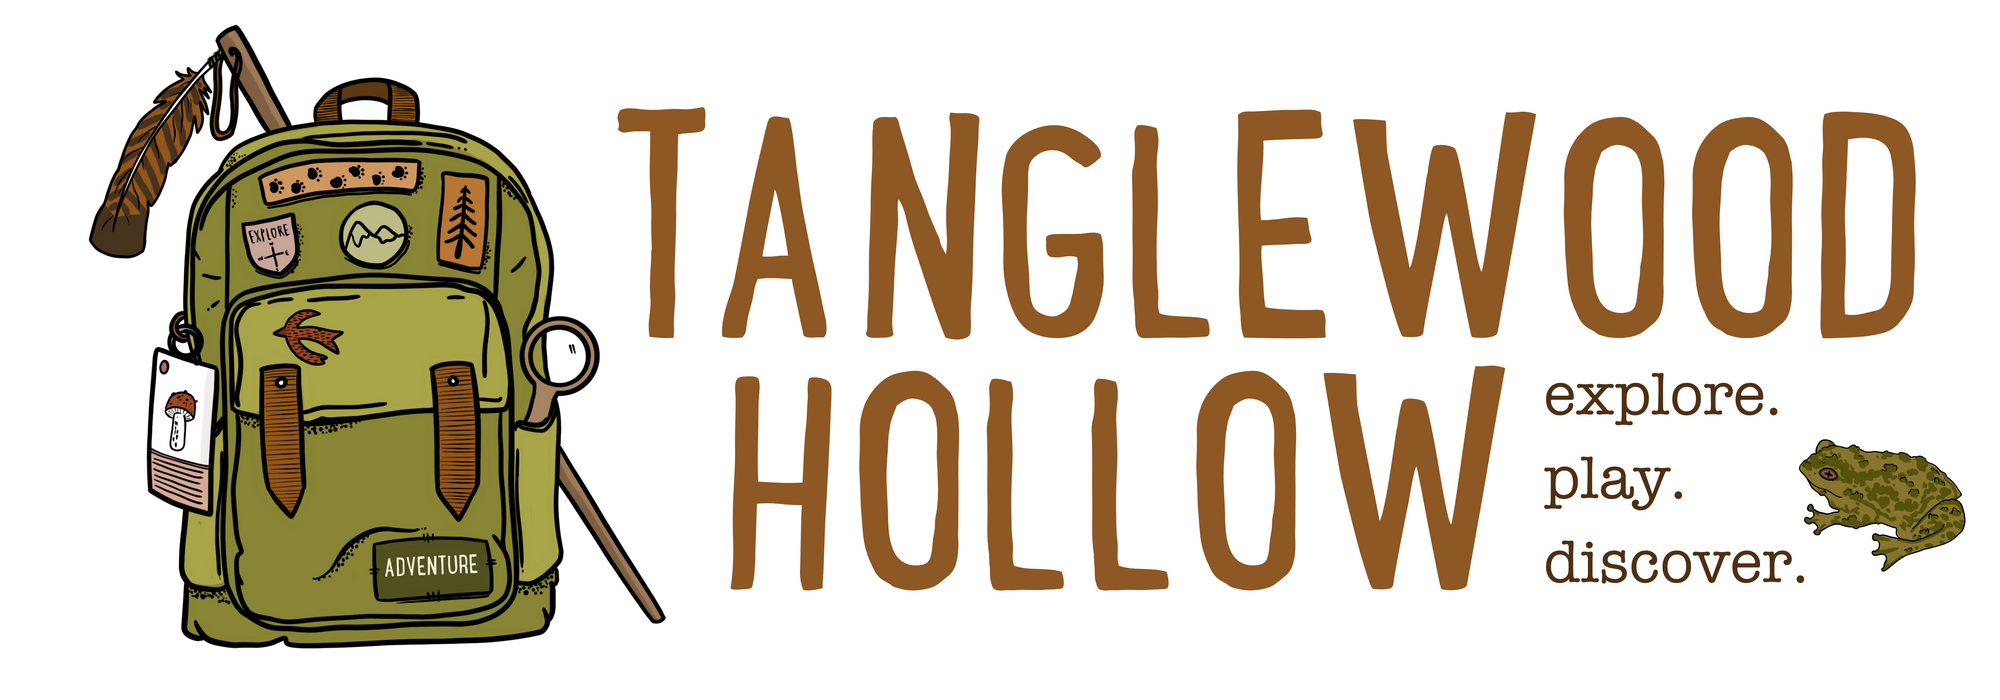 Tanglewood Hollow